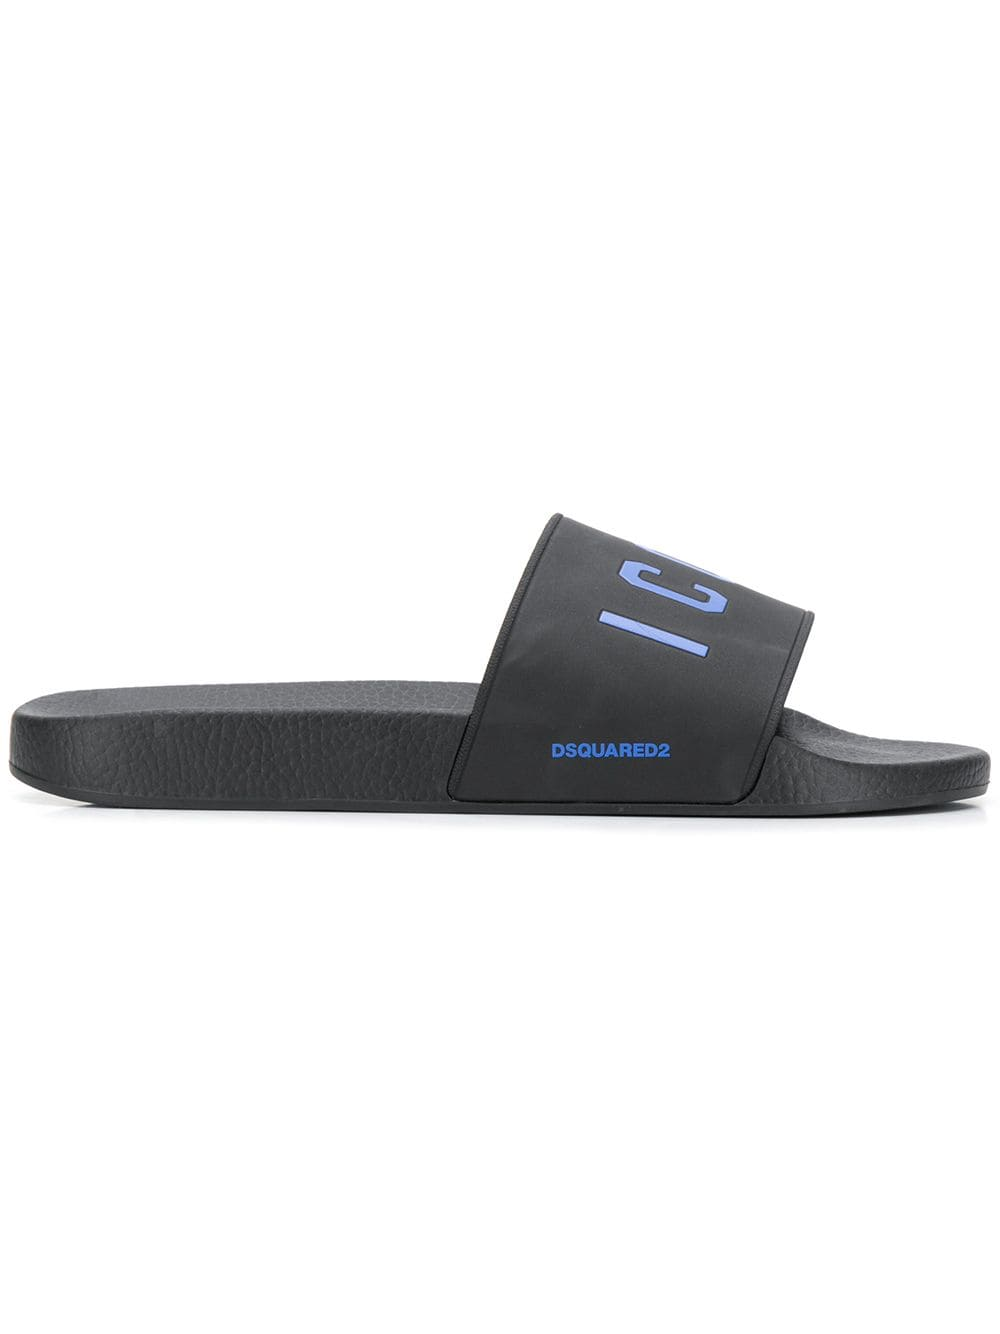 DSQUARED2 ICON Slides | Dsquared2